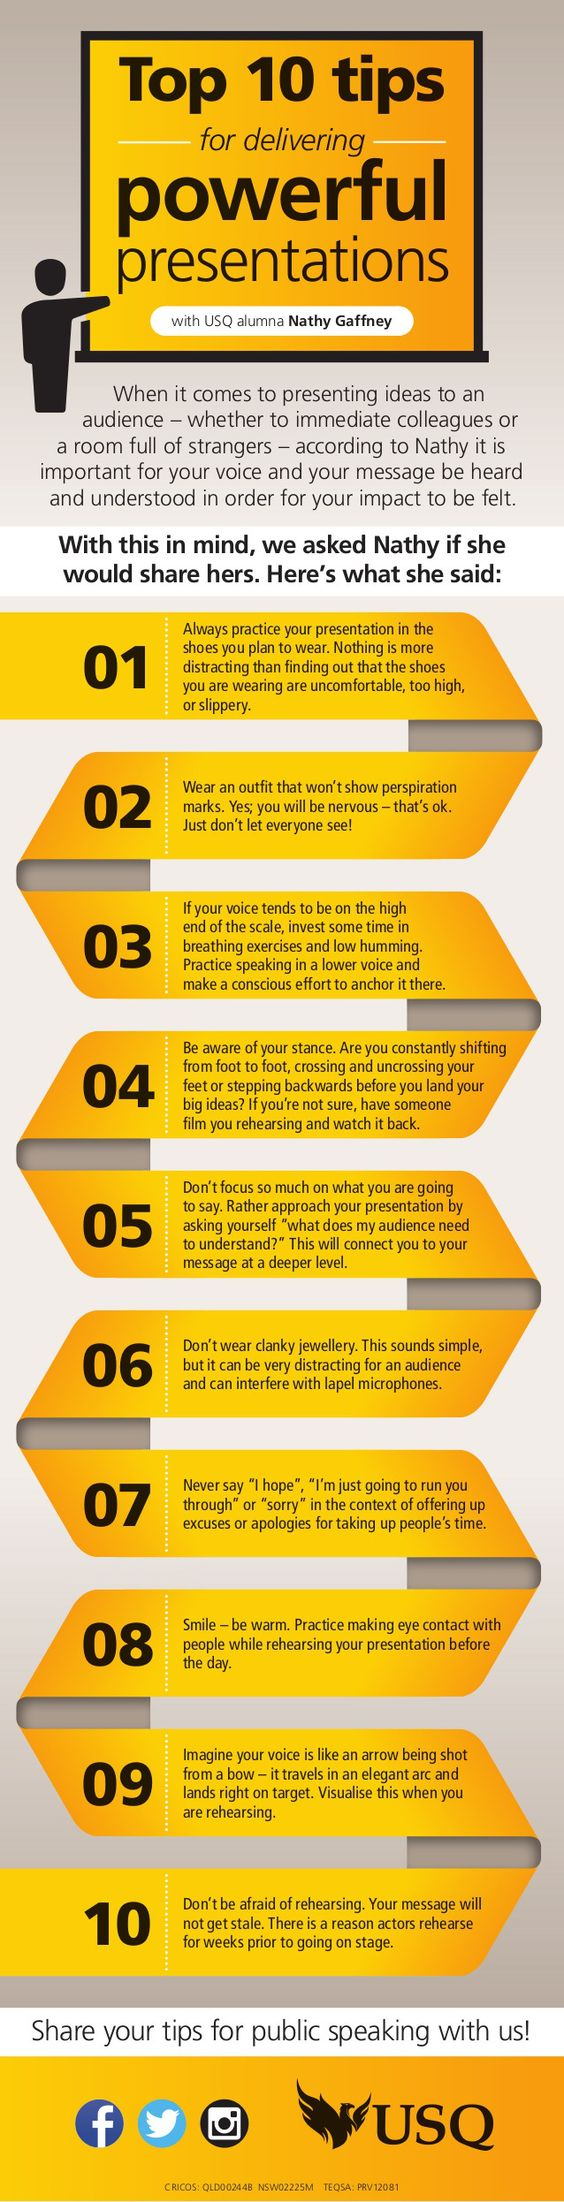 Top 10 tips for delivering powerful presentations #infografia #infographic www.tomislavperko.com JAMSO helps put life into your performance and performance into life www.jamsovaluesmarter.com #performancemanagement